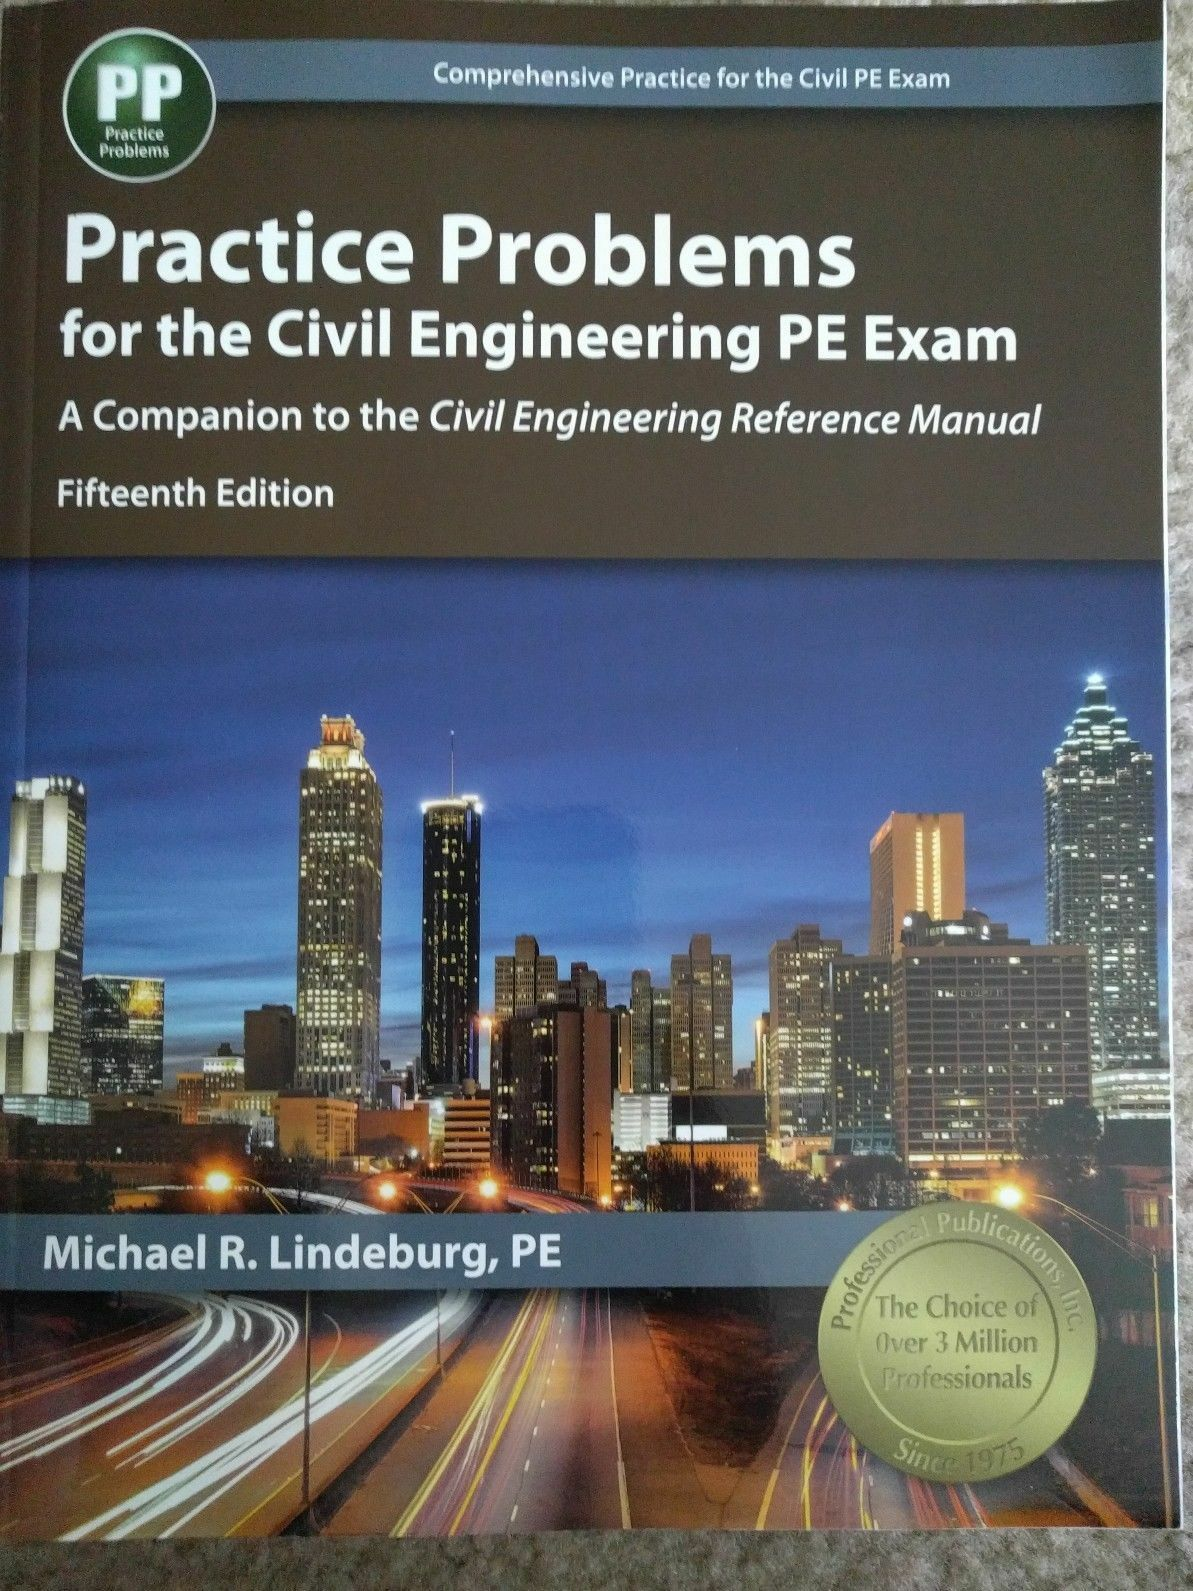 Practice Problems for the Civil Engineering PE Exam Fifteenth 15th Edition  1 of 1Only 1 available See More